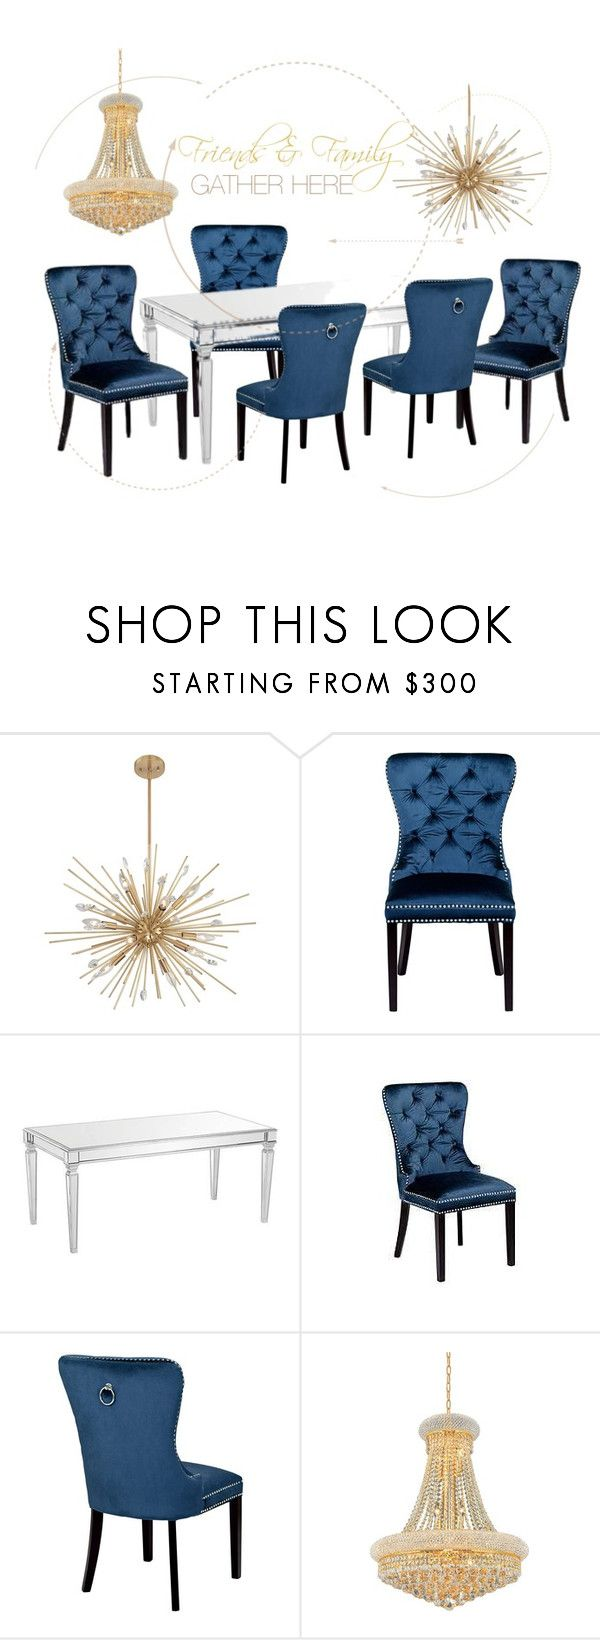 62 best Polyvore for Home images on Pinterest | Inredning